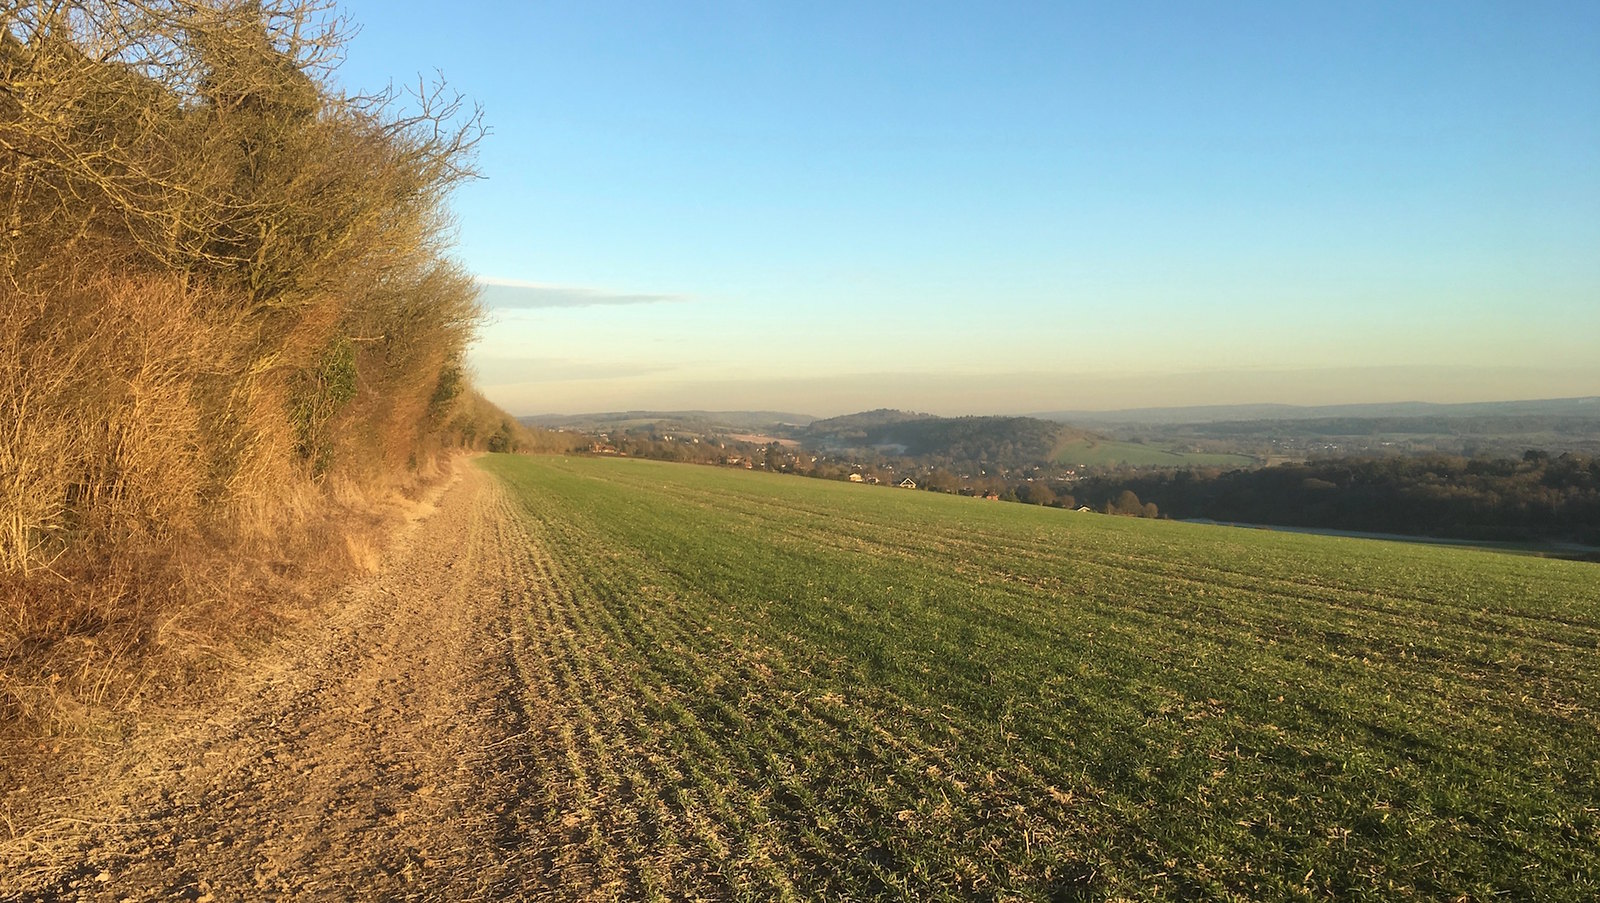 View from the Hog's Back start Guildford to Farnham walk